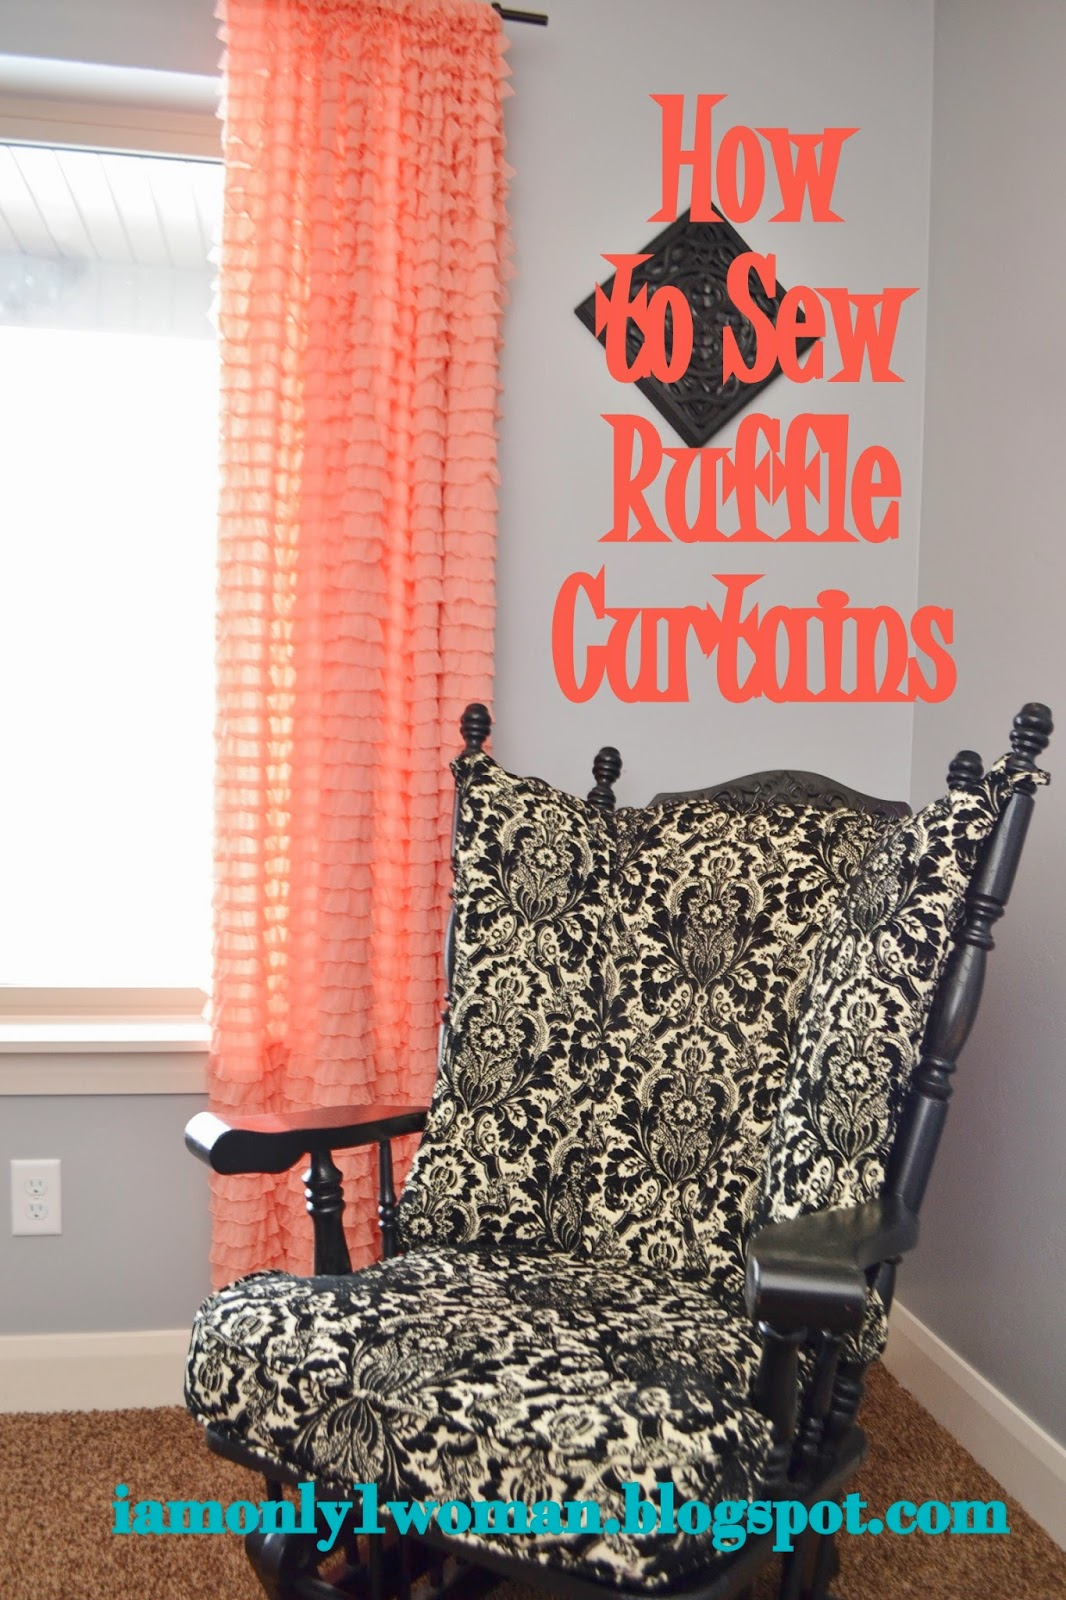 http://www.avisiontoremember.com/2014/06/how-to-sew-simple-ruffle-curtains.html